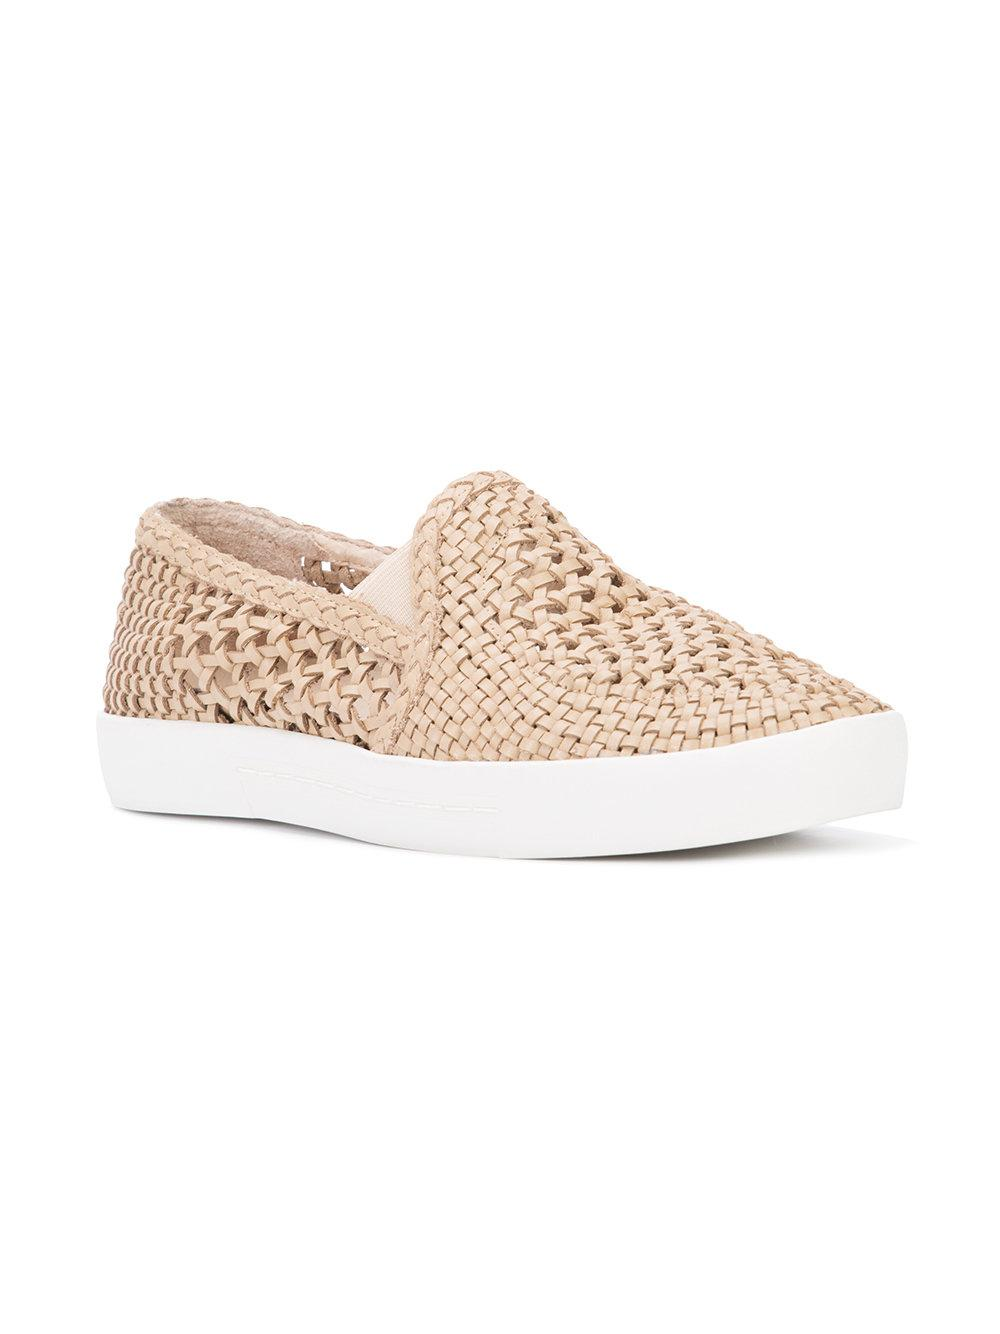 Joie Leather Dewey Slip-on Sneakers in Natural